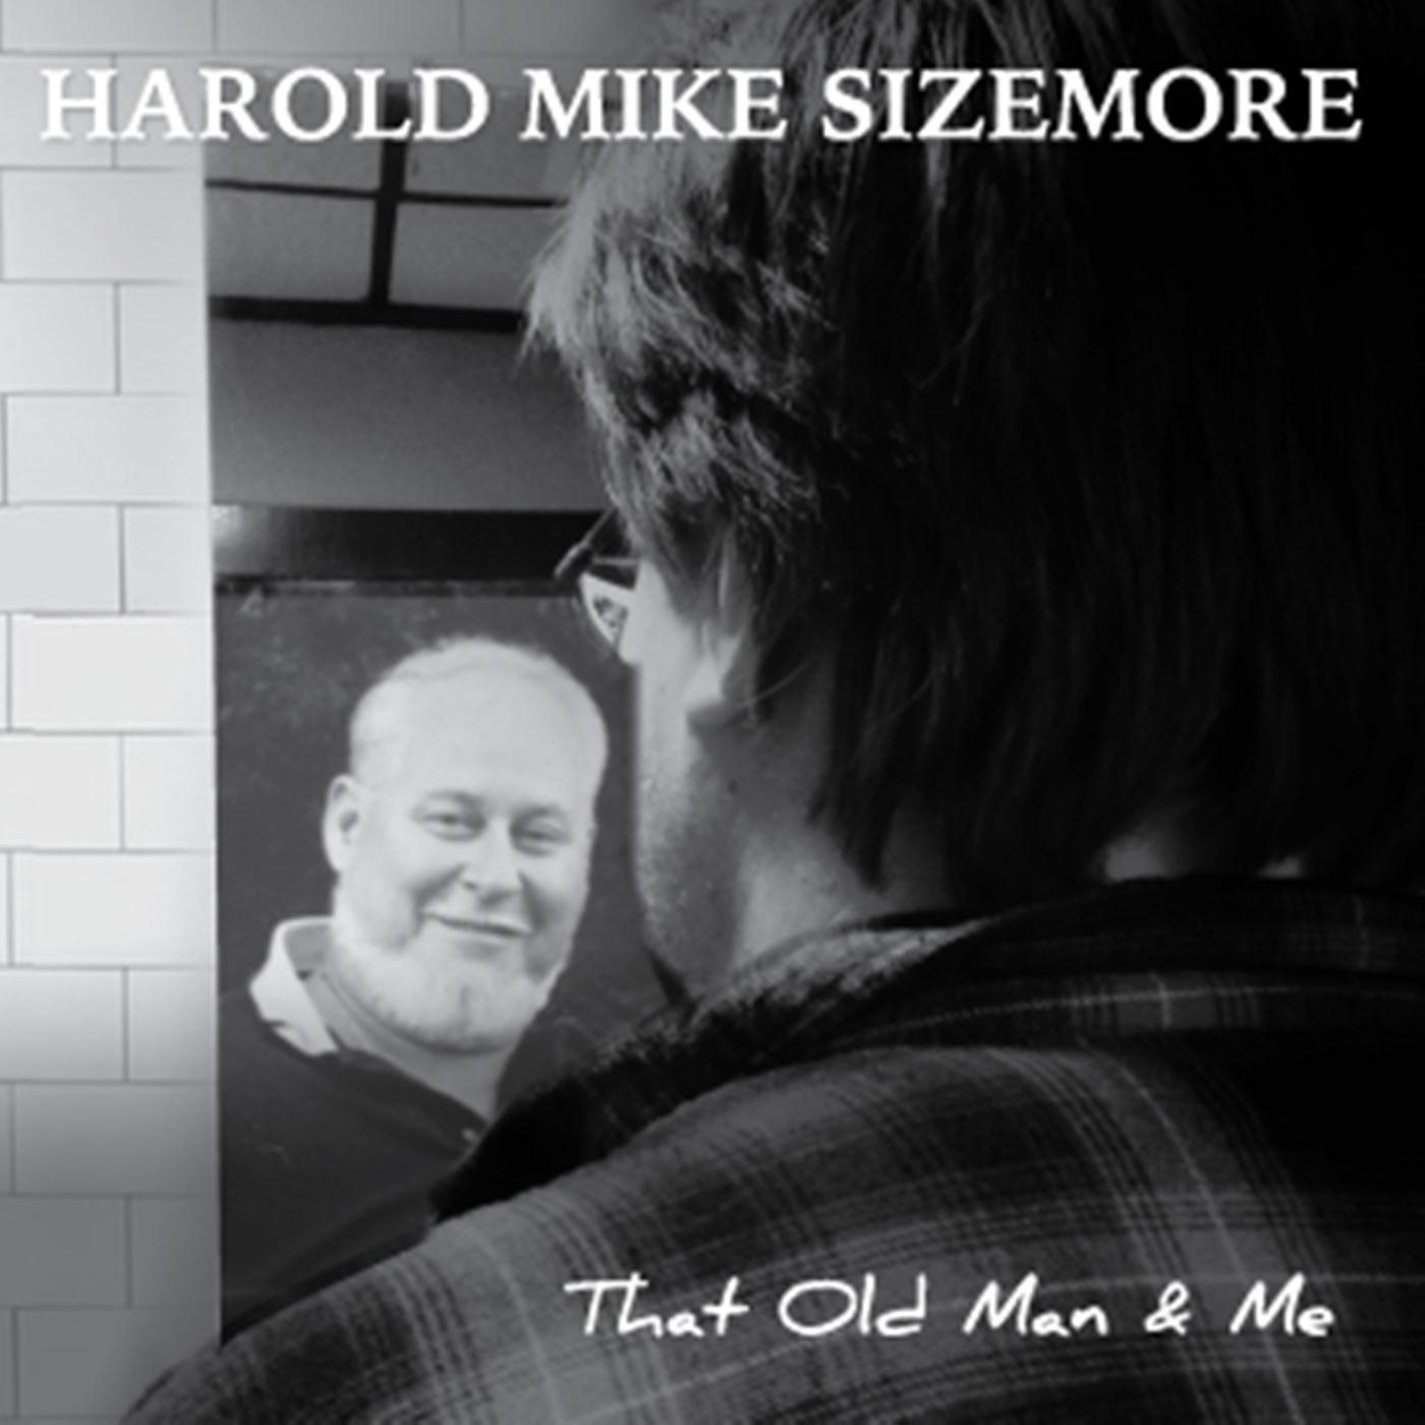 HAROLD MIKE SIZEMORE That Old Man 'n' Me